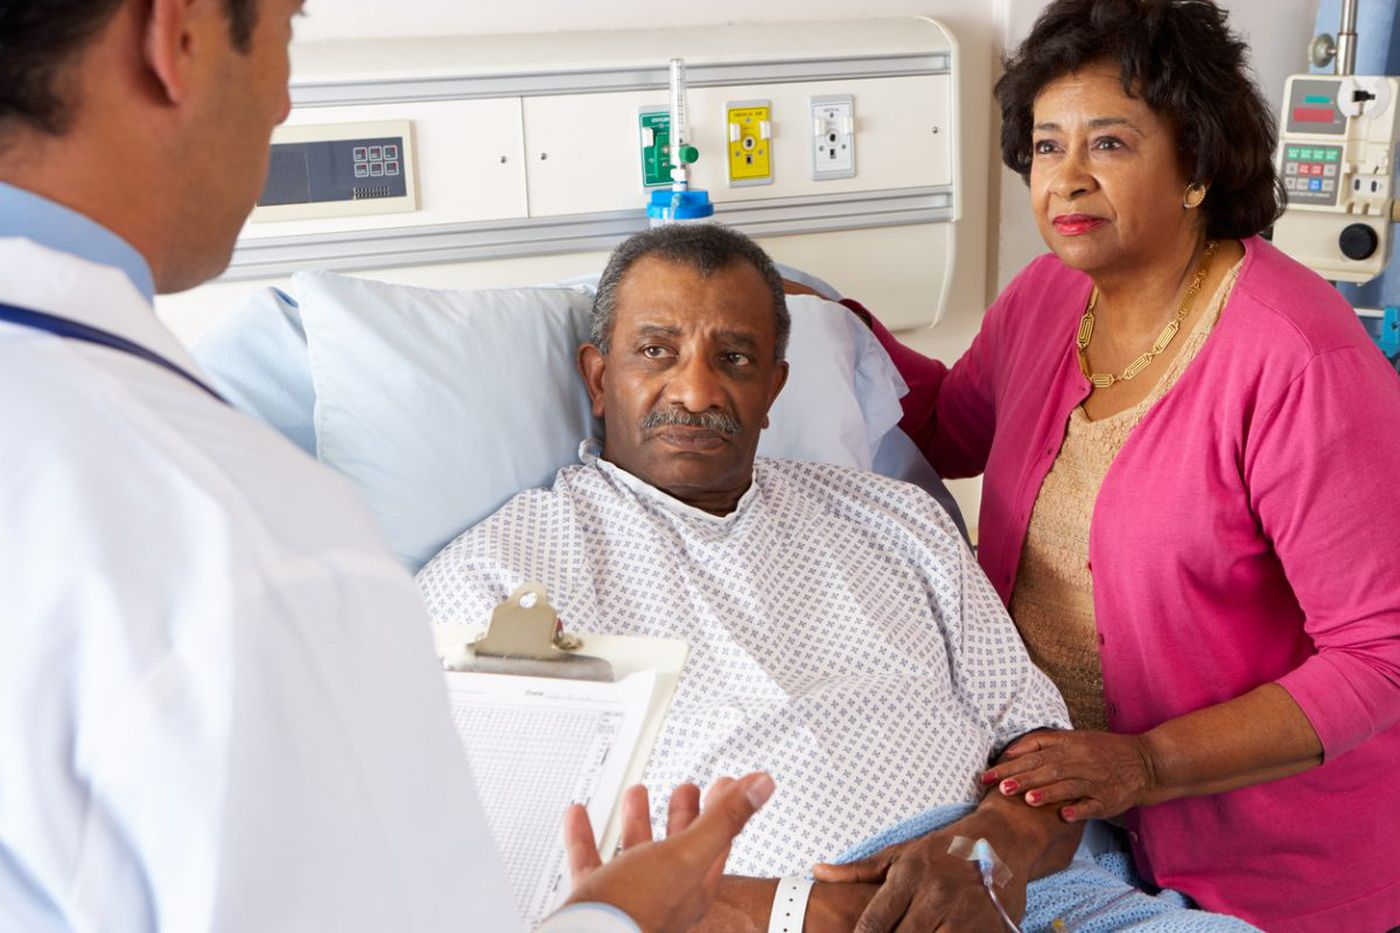 Study: Minorities get too much low-value health care